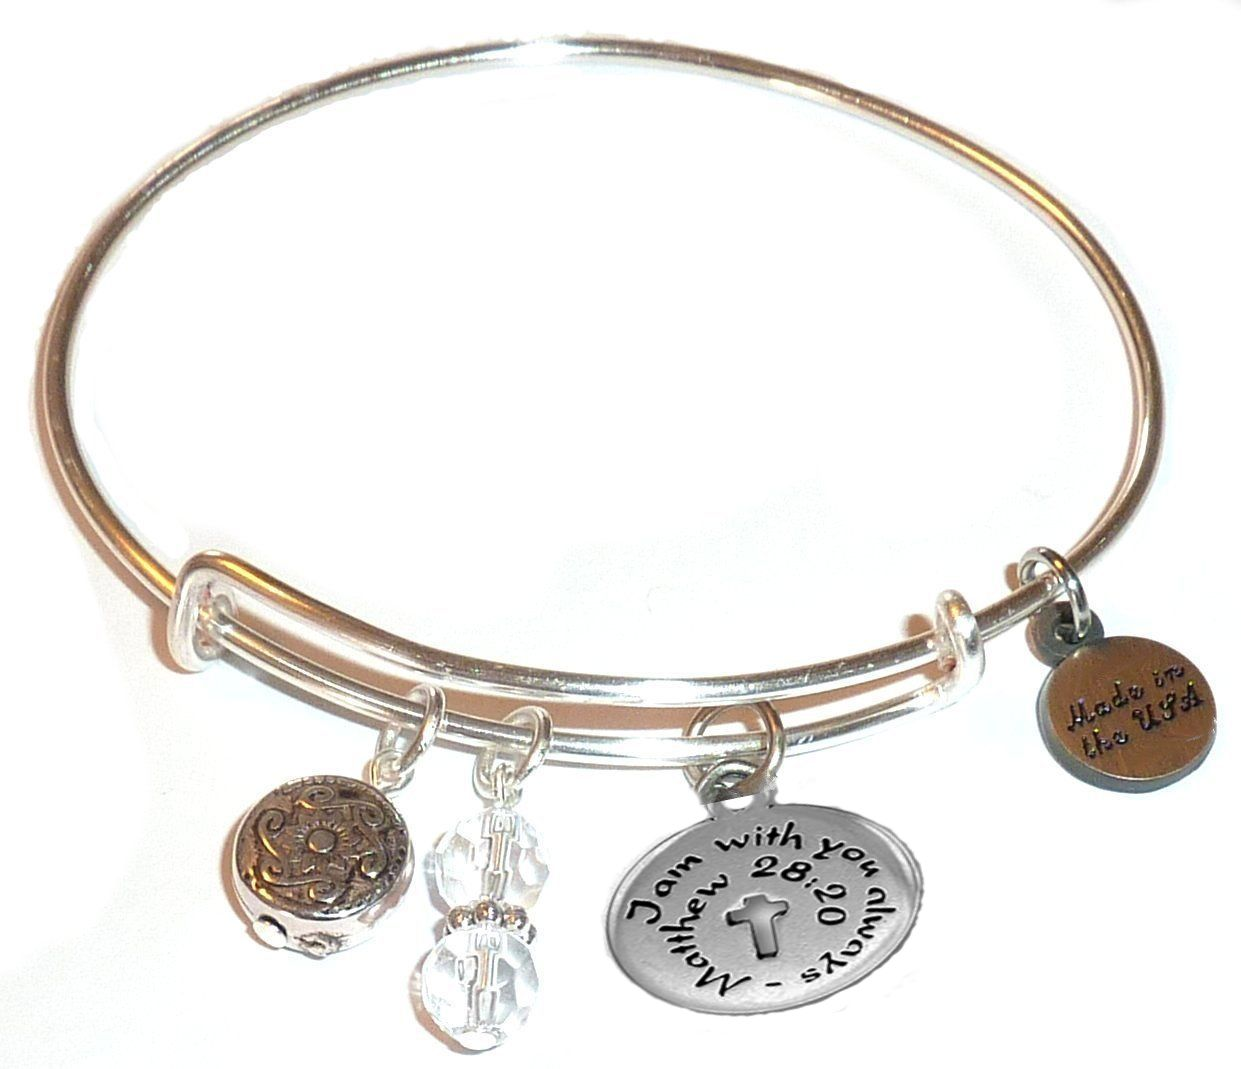 mother's day gift idea - religious charm bracelet